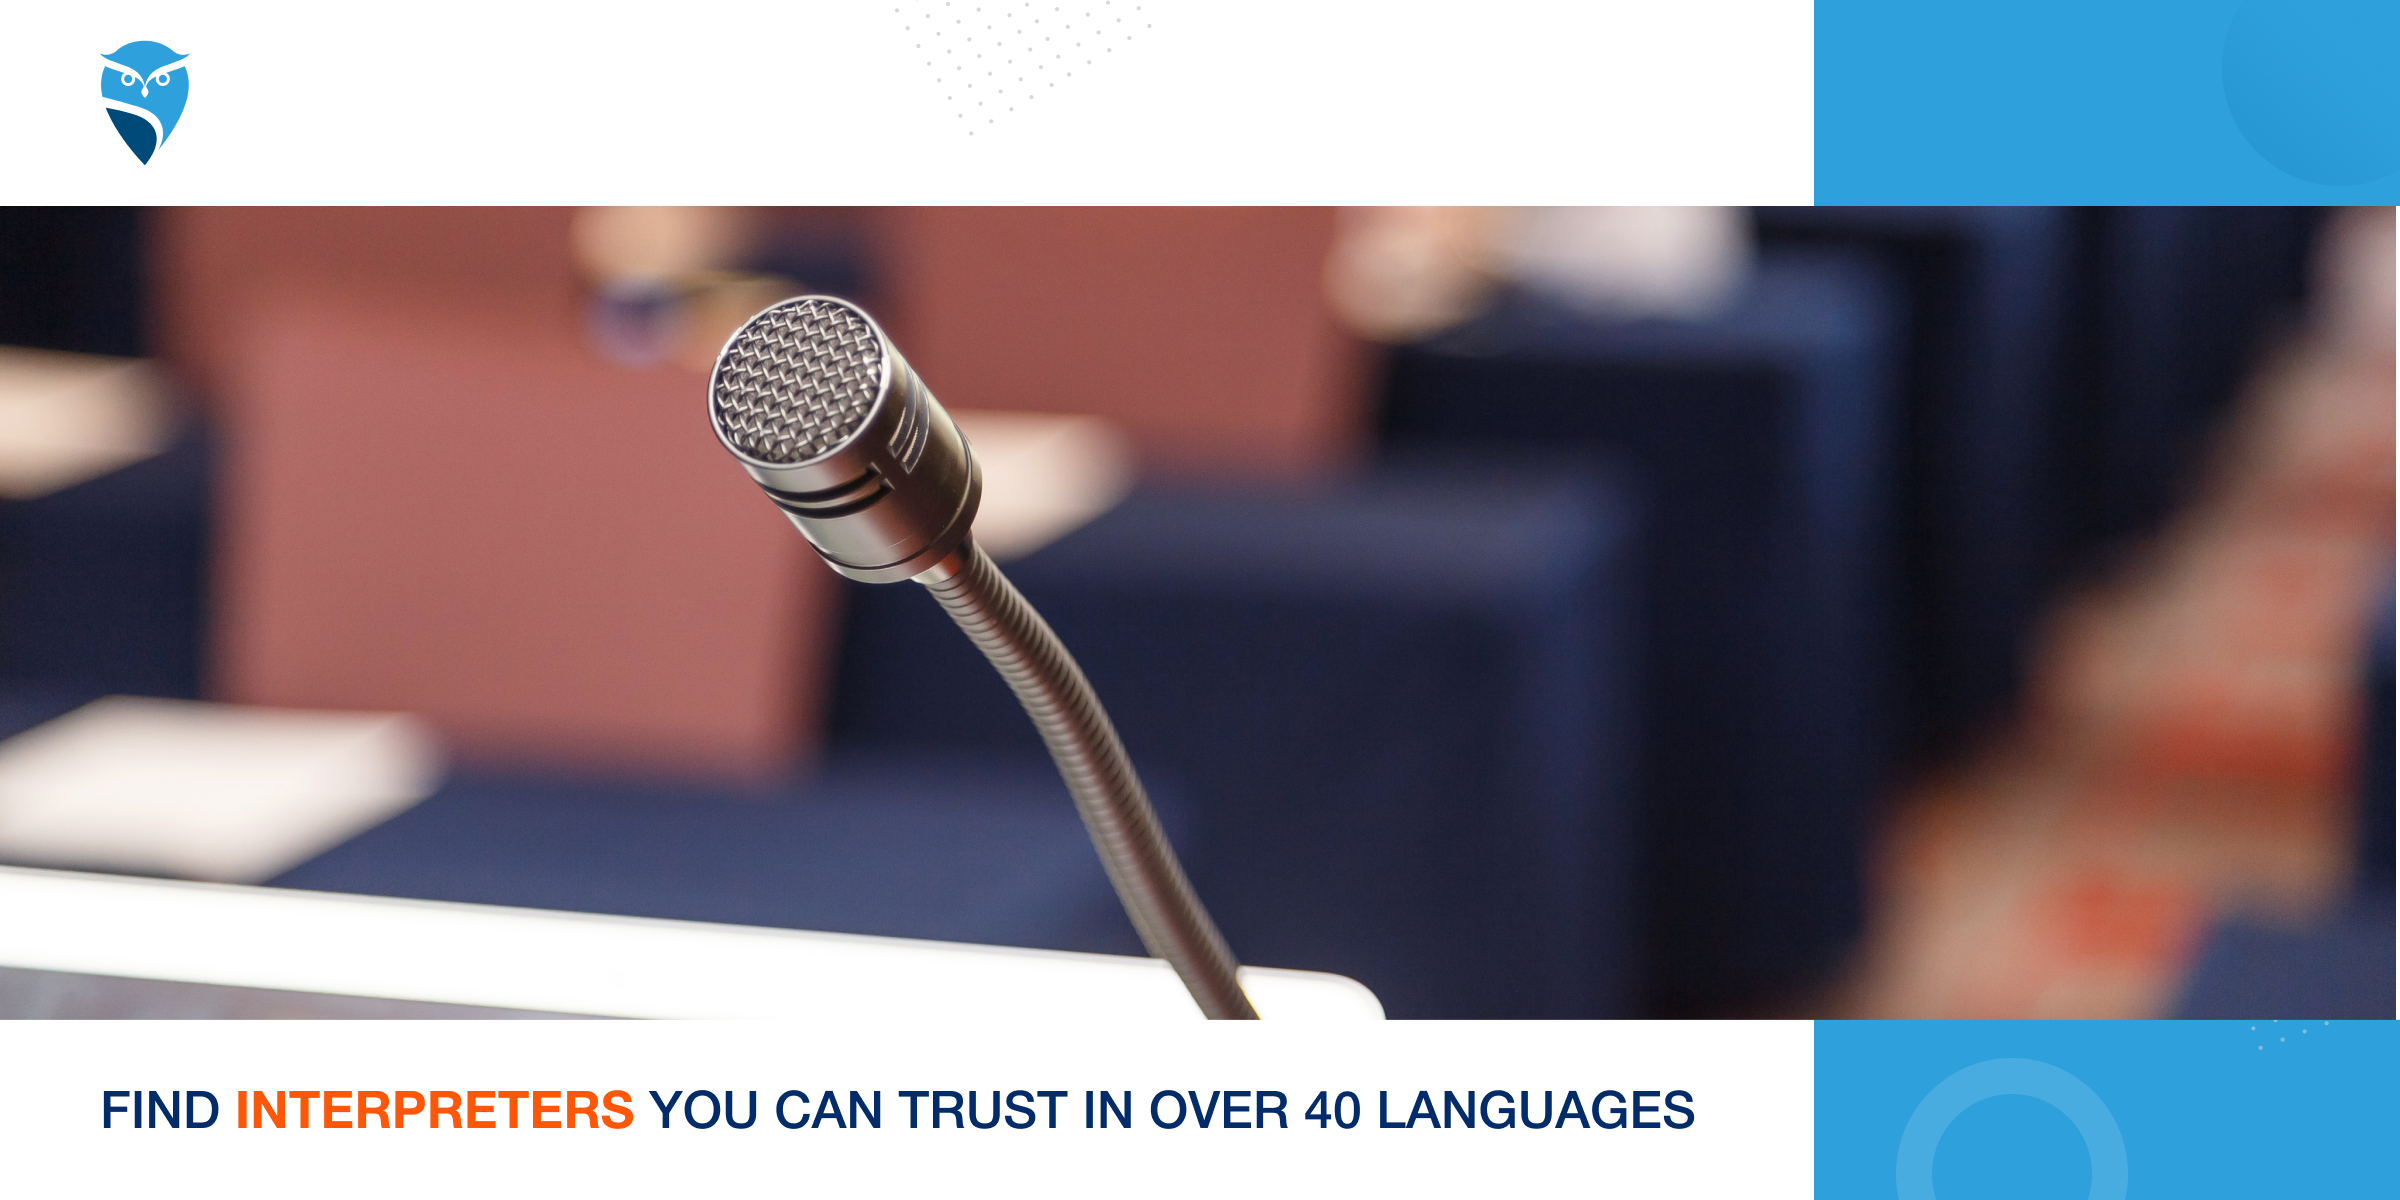 Find Interpreters You Can Trust in Over 40 Languages